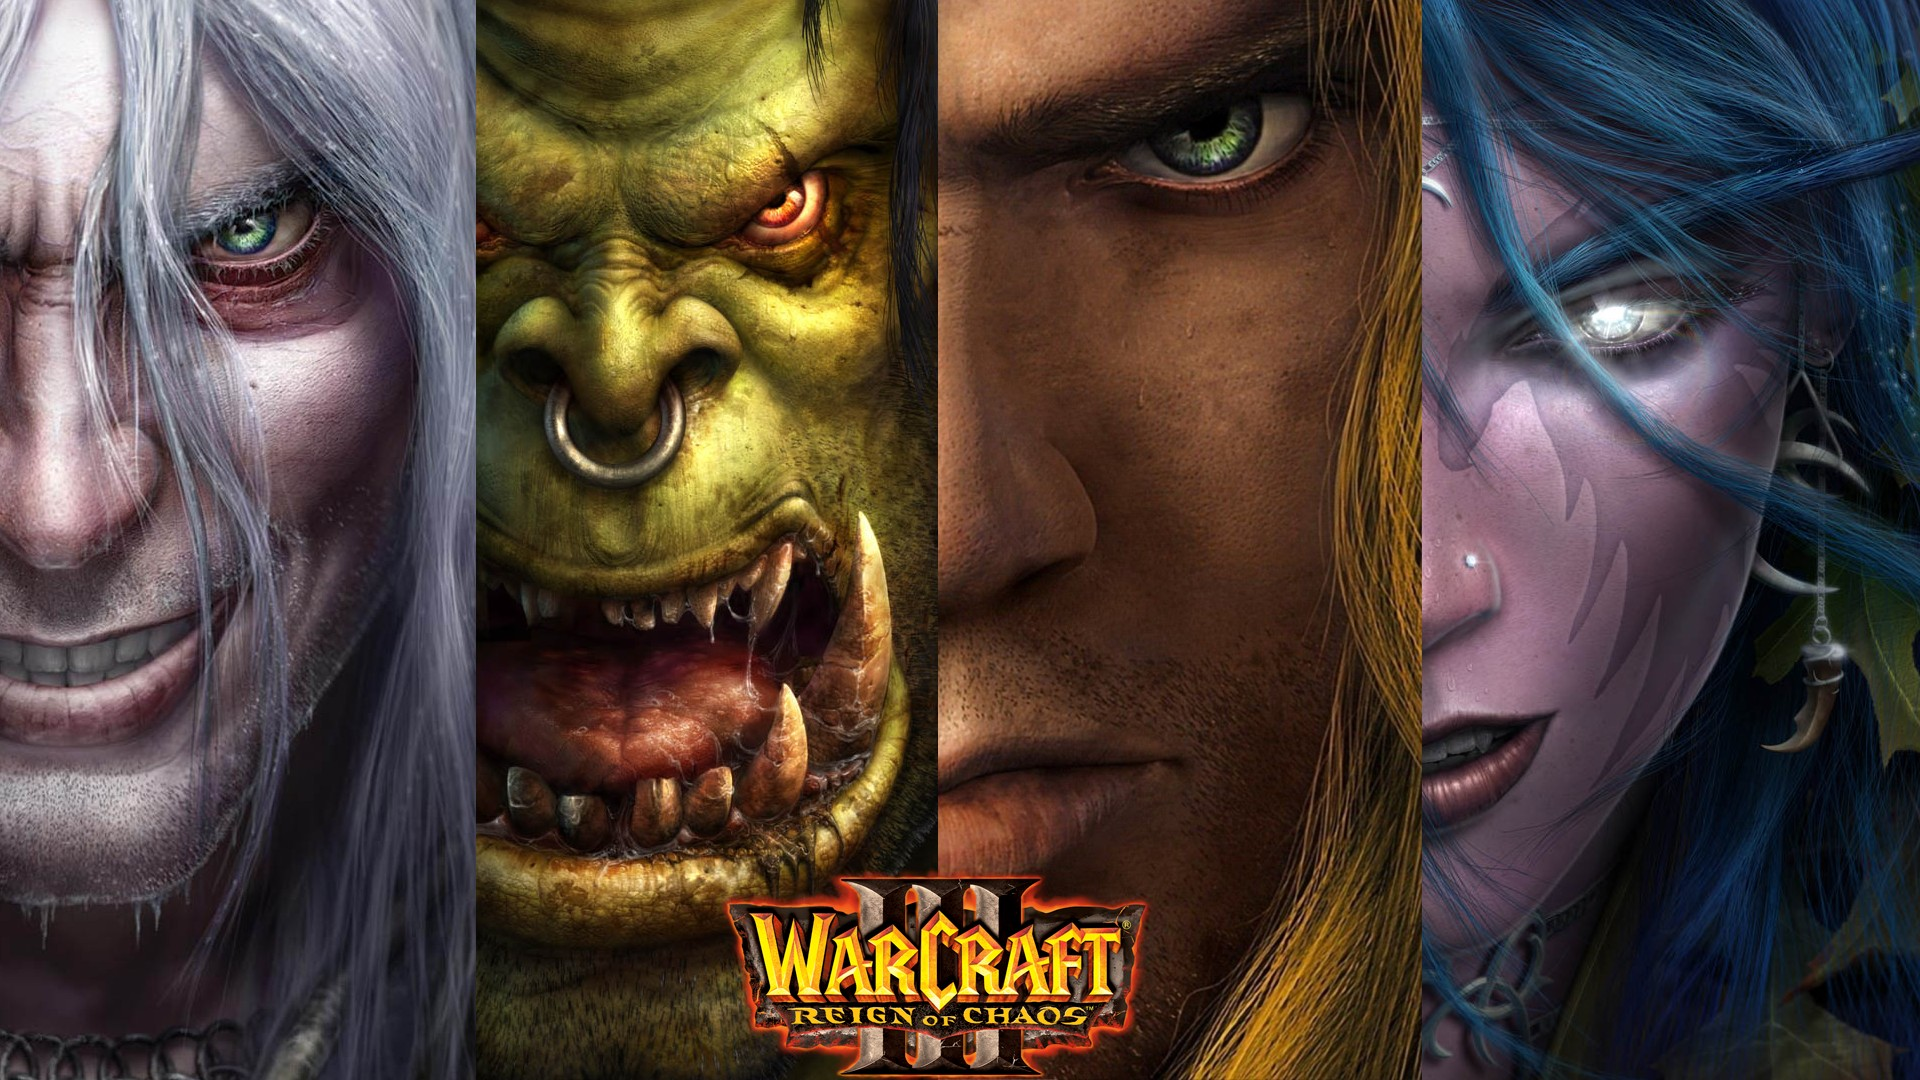 warcraft 3 reign of chaos test tipps videos news release termin. Black Bedroom Furniture Sets. Home Design Ideas